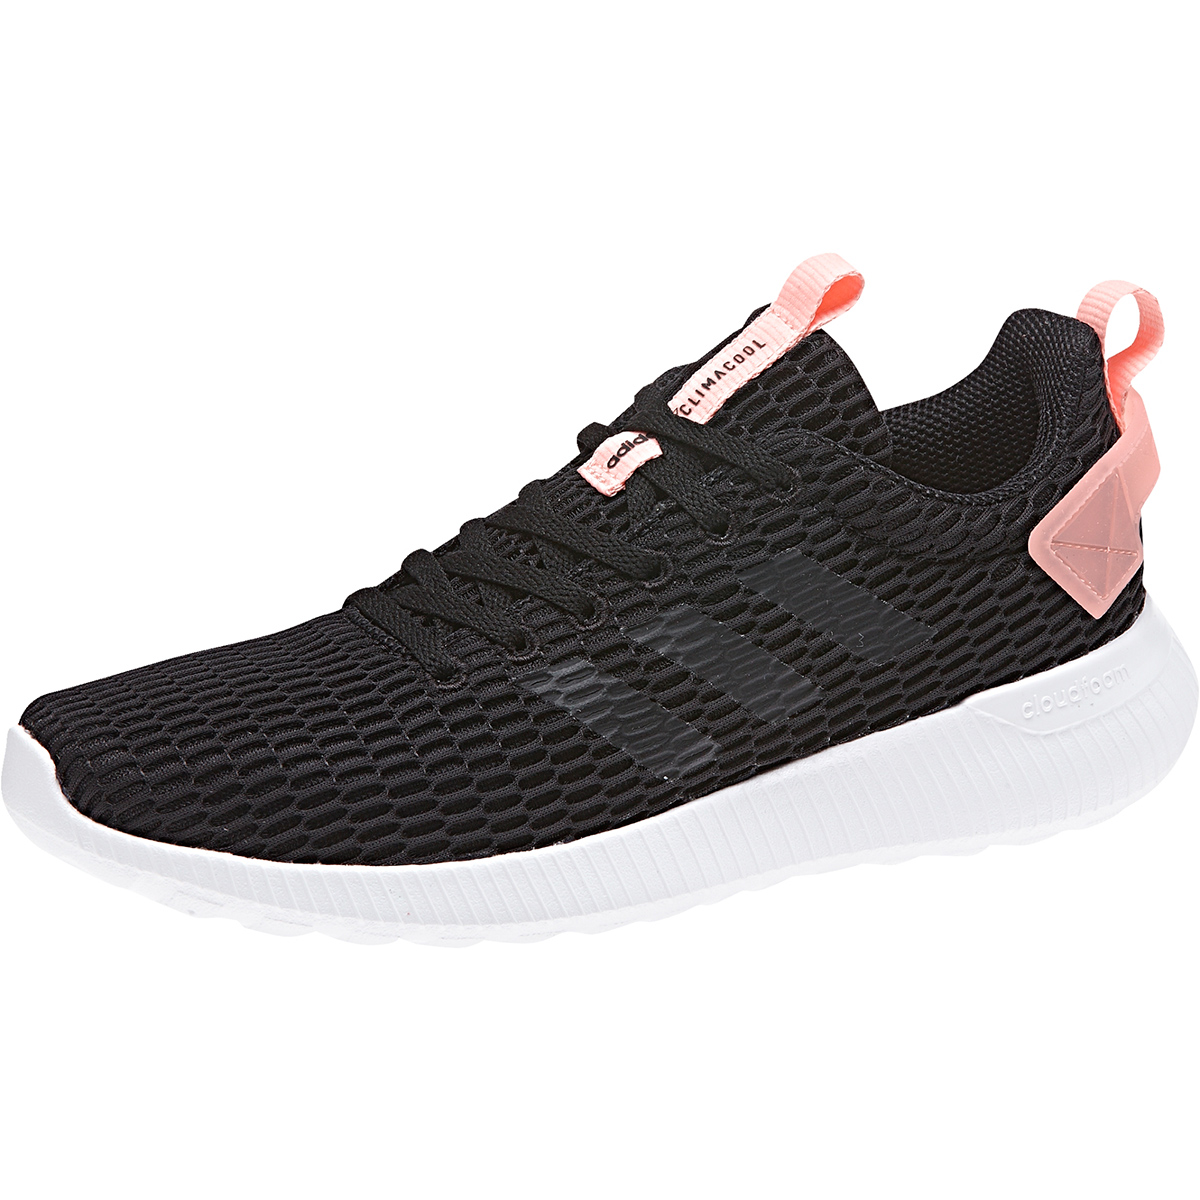 new style 7f162 9f38b ADIDAS Women's Cloudfoam Lite Racer CC Running Shoes